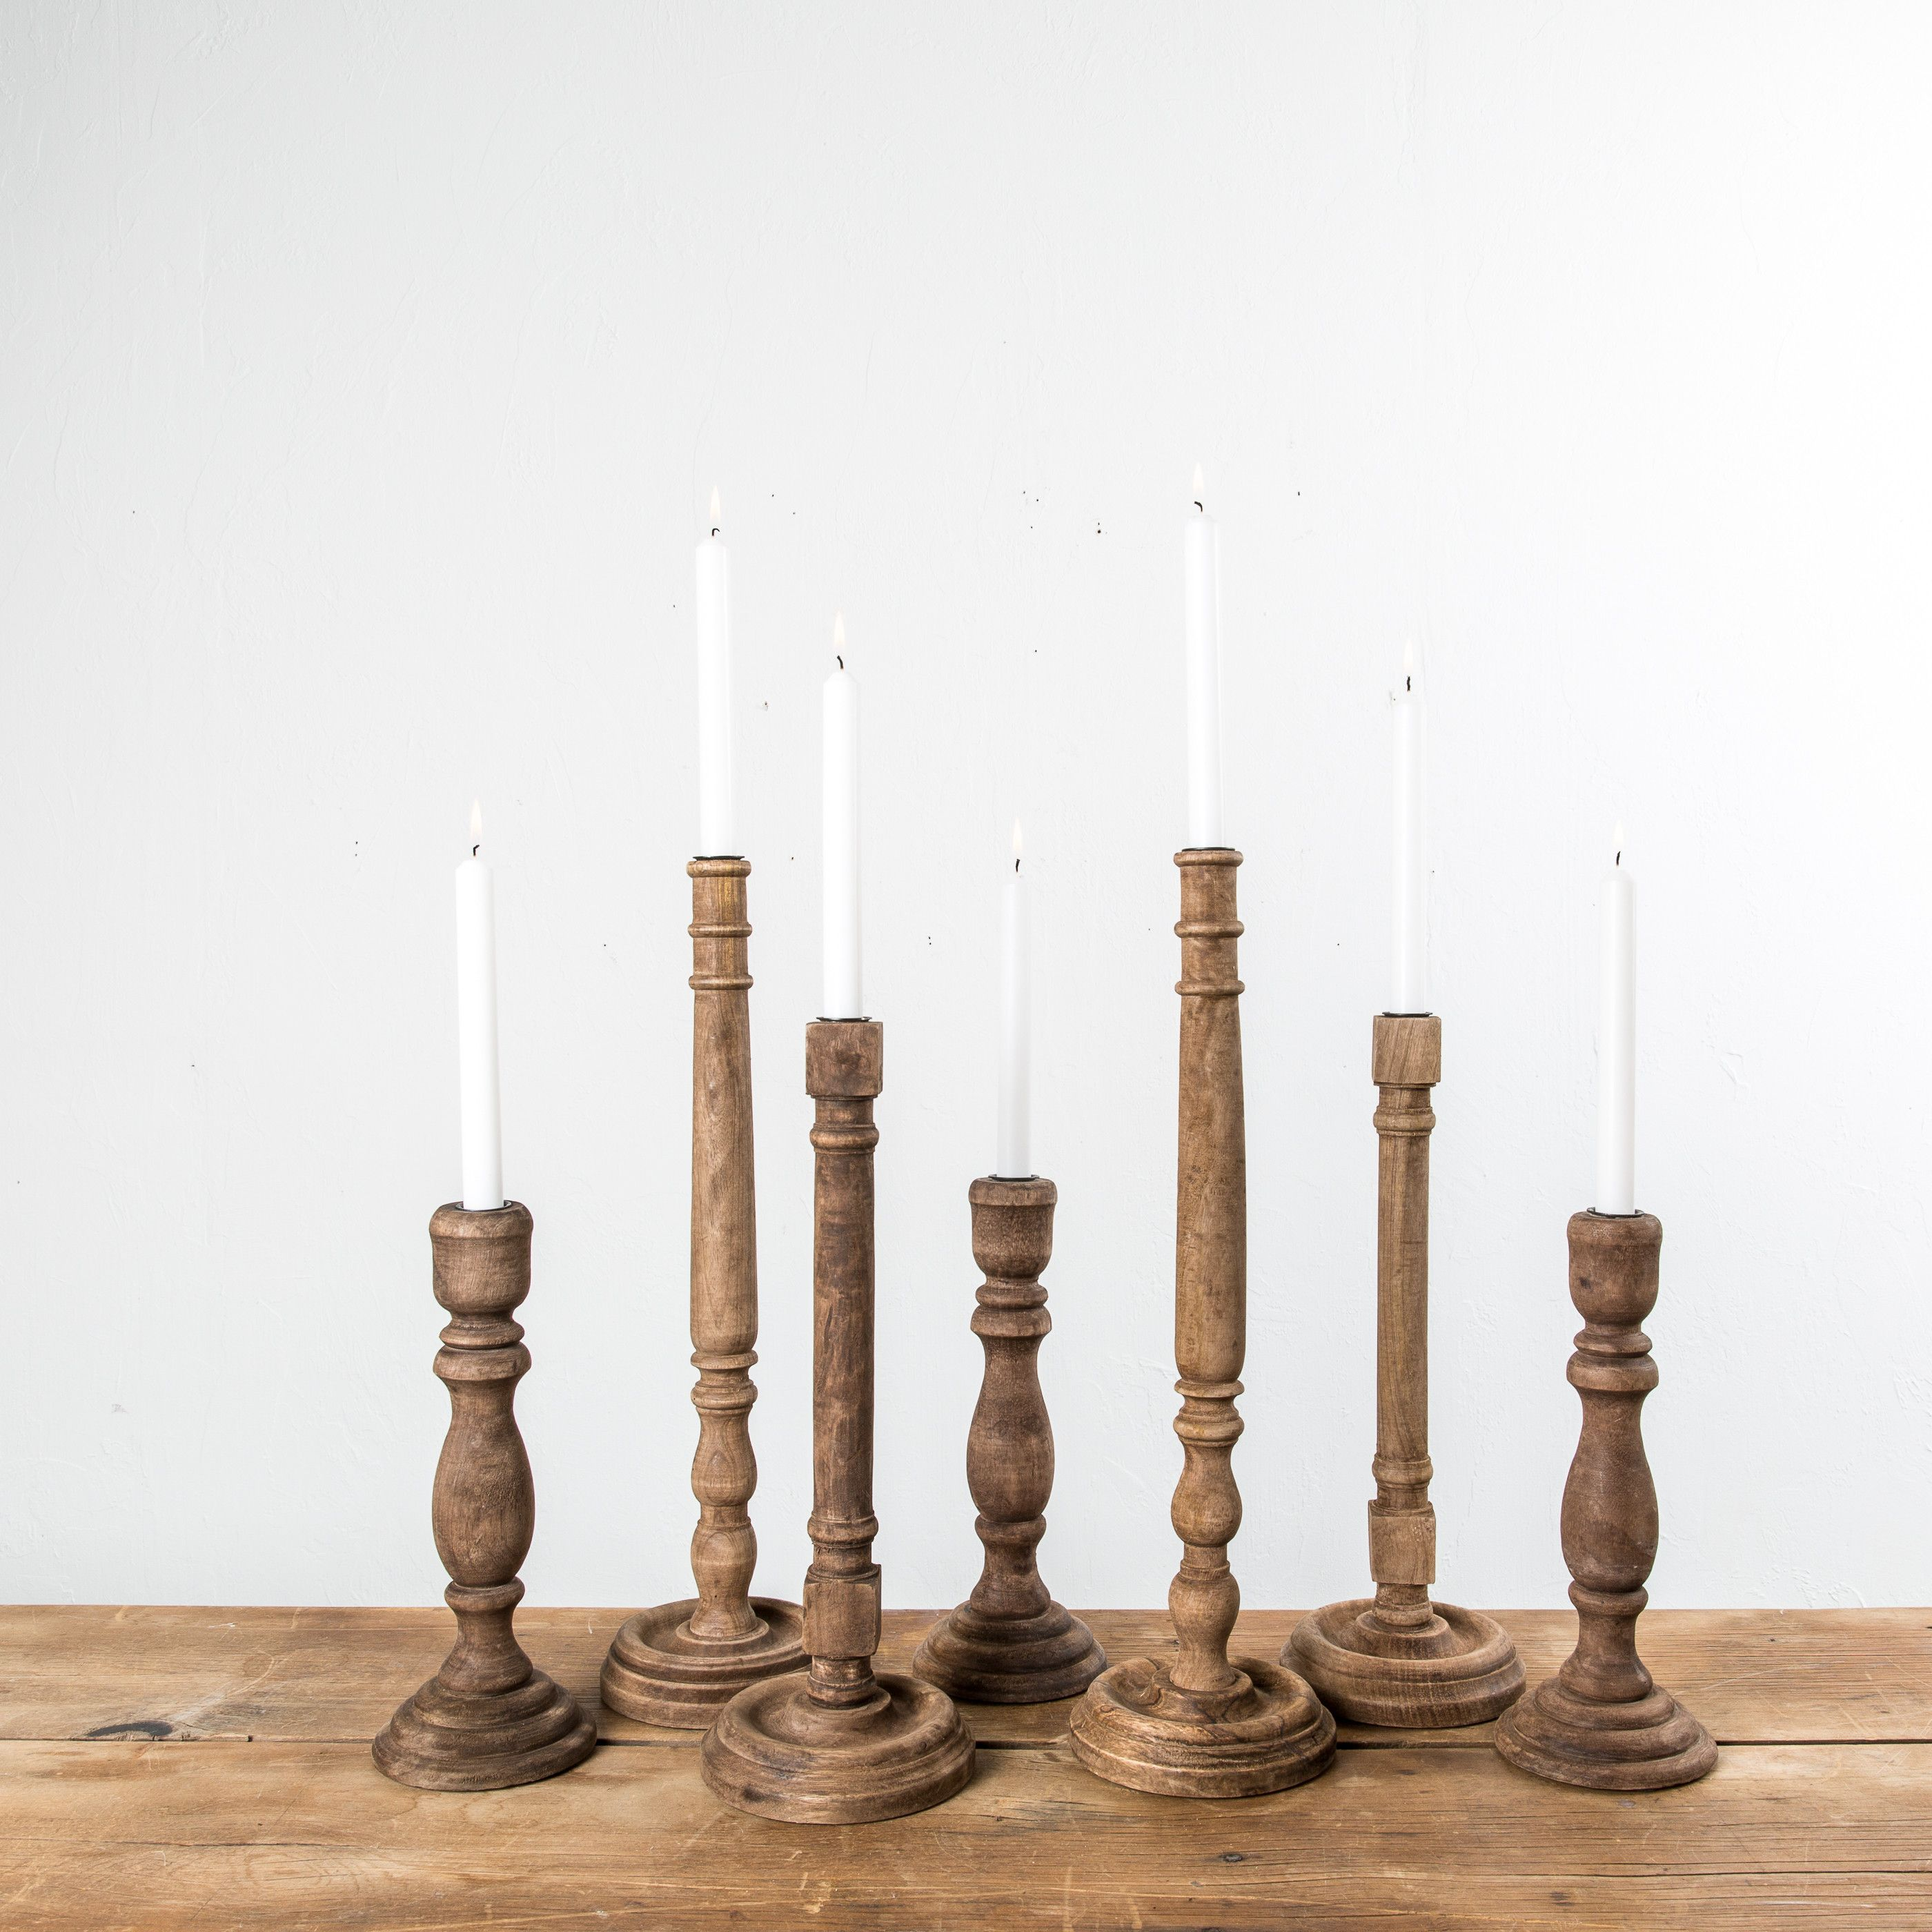 Wooden Taper Candleholder For The Home Candle Holders Magnolia